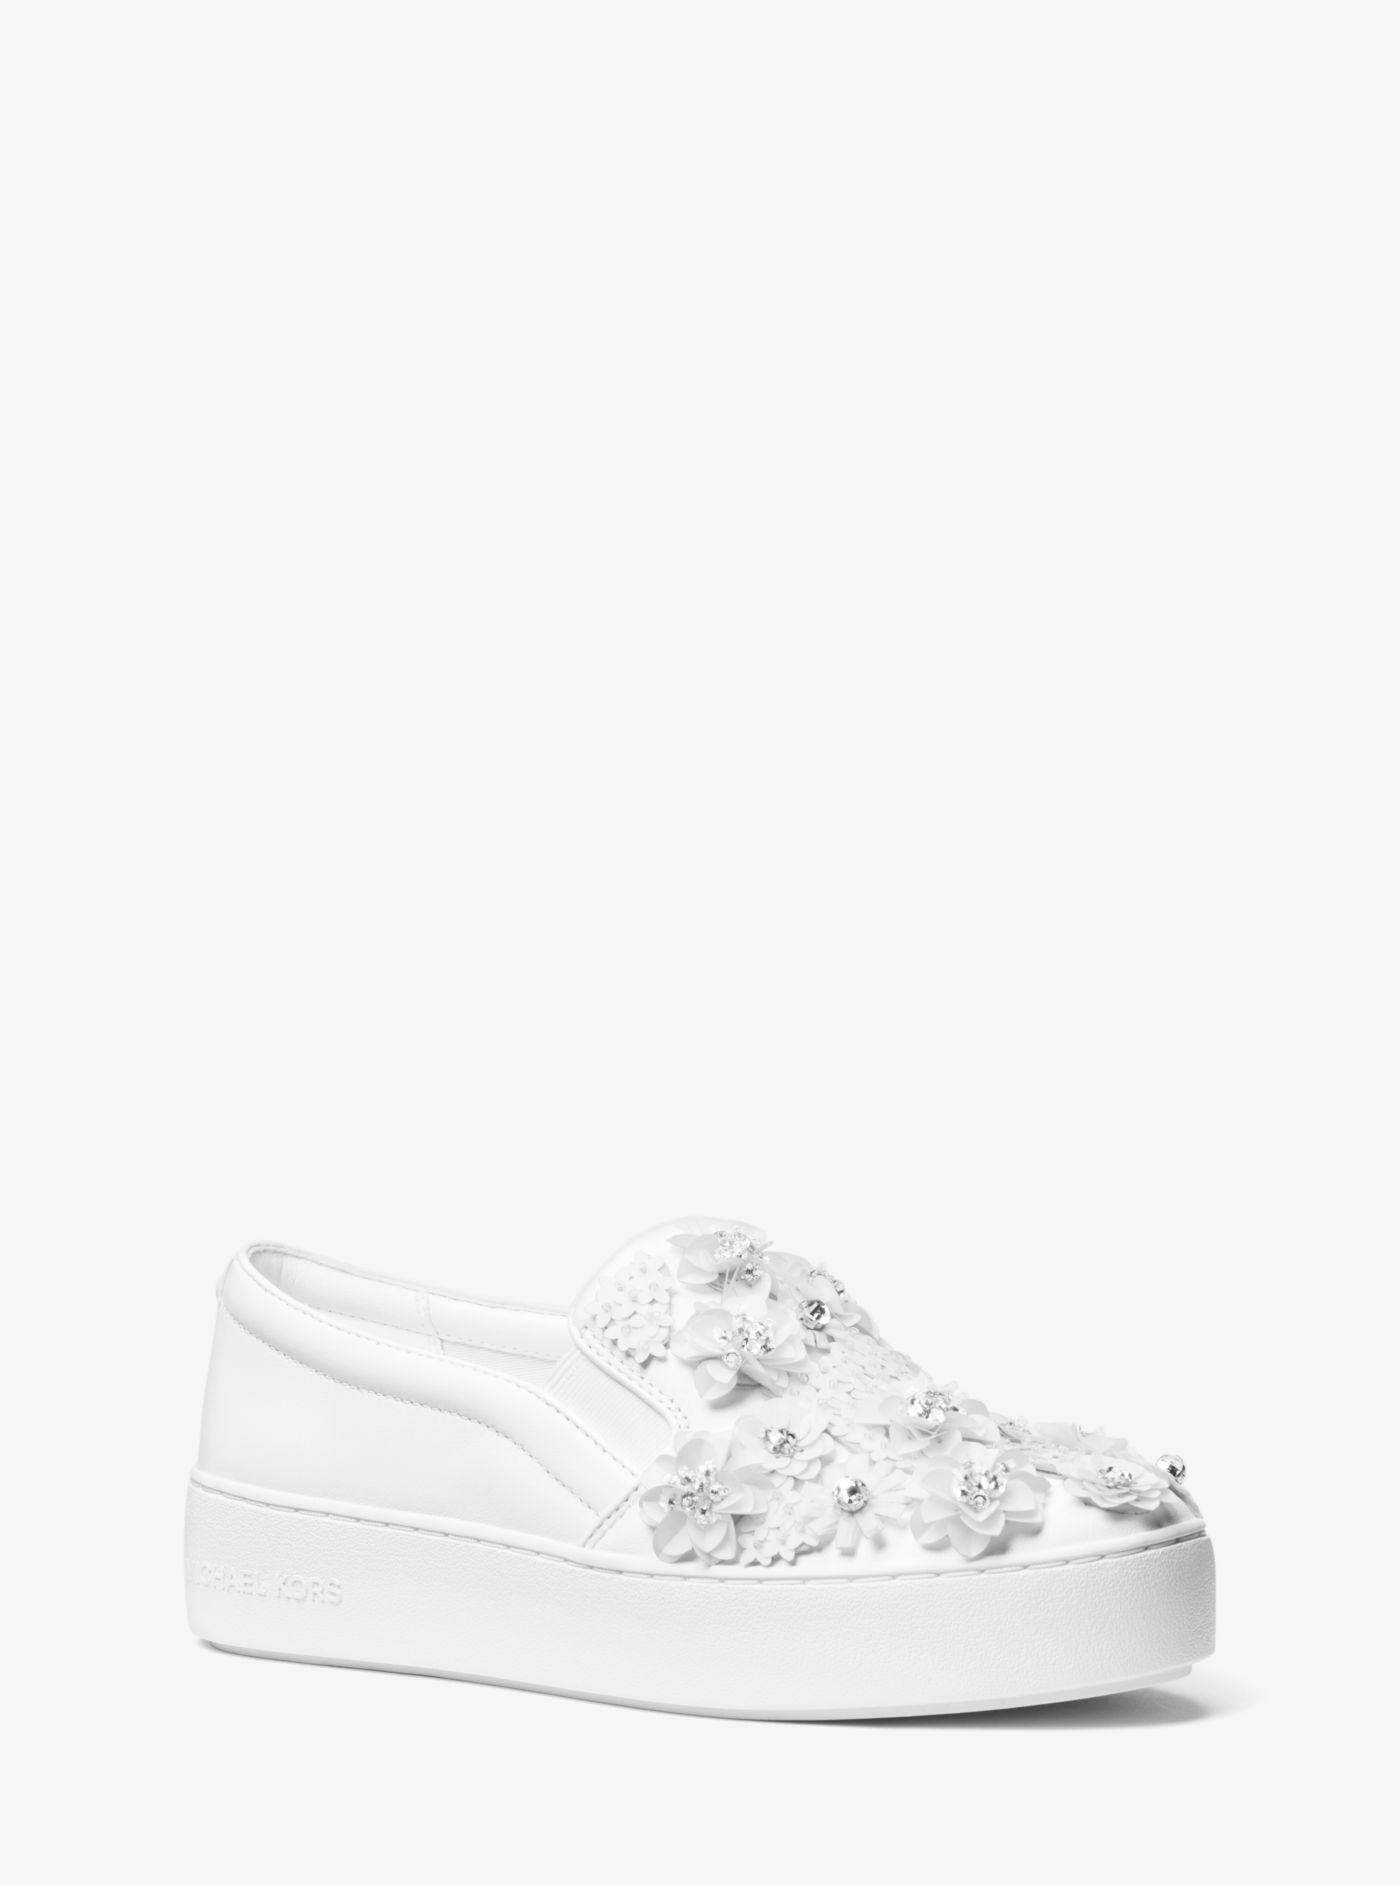 ecf54a03d3 Michael Kors Trent Floral Sequined Slip-on Sneaker in White - Lyst